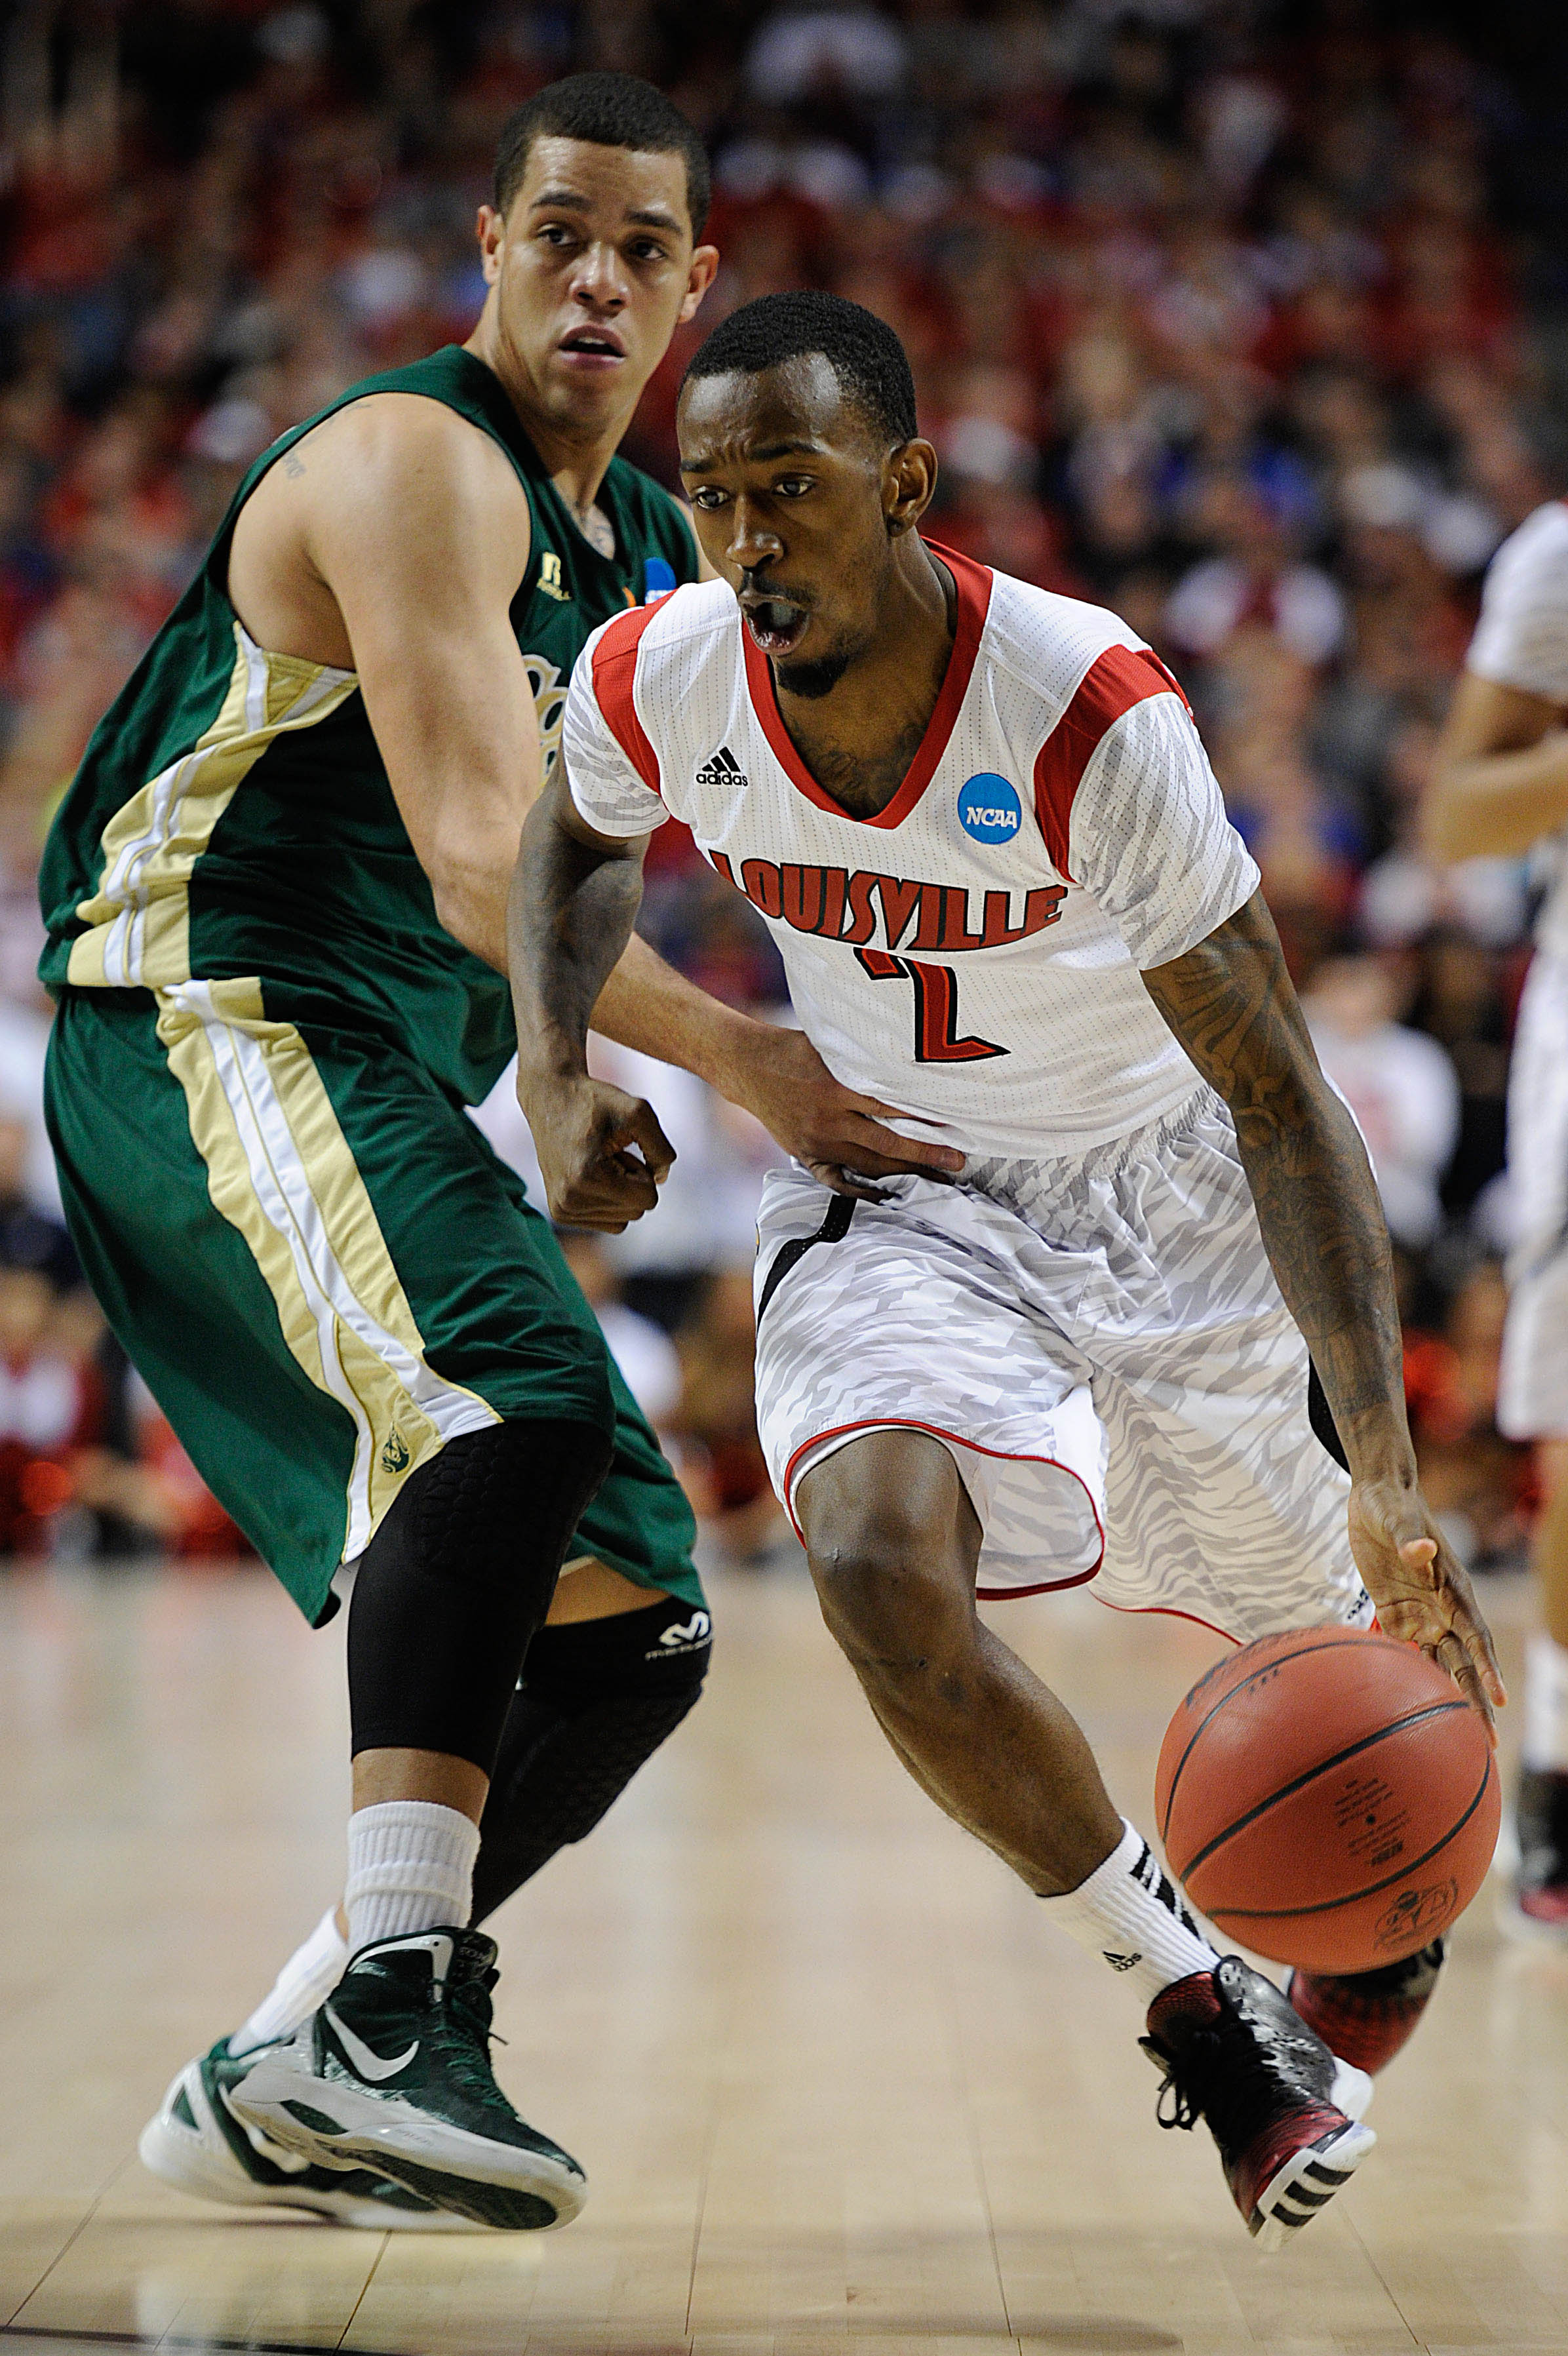 Russ Smith averaged 18.7 points for the Cardinals last season. (USA Today Sports)